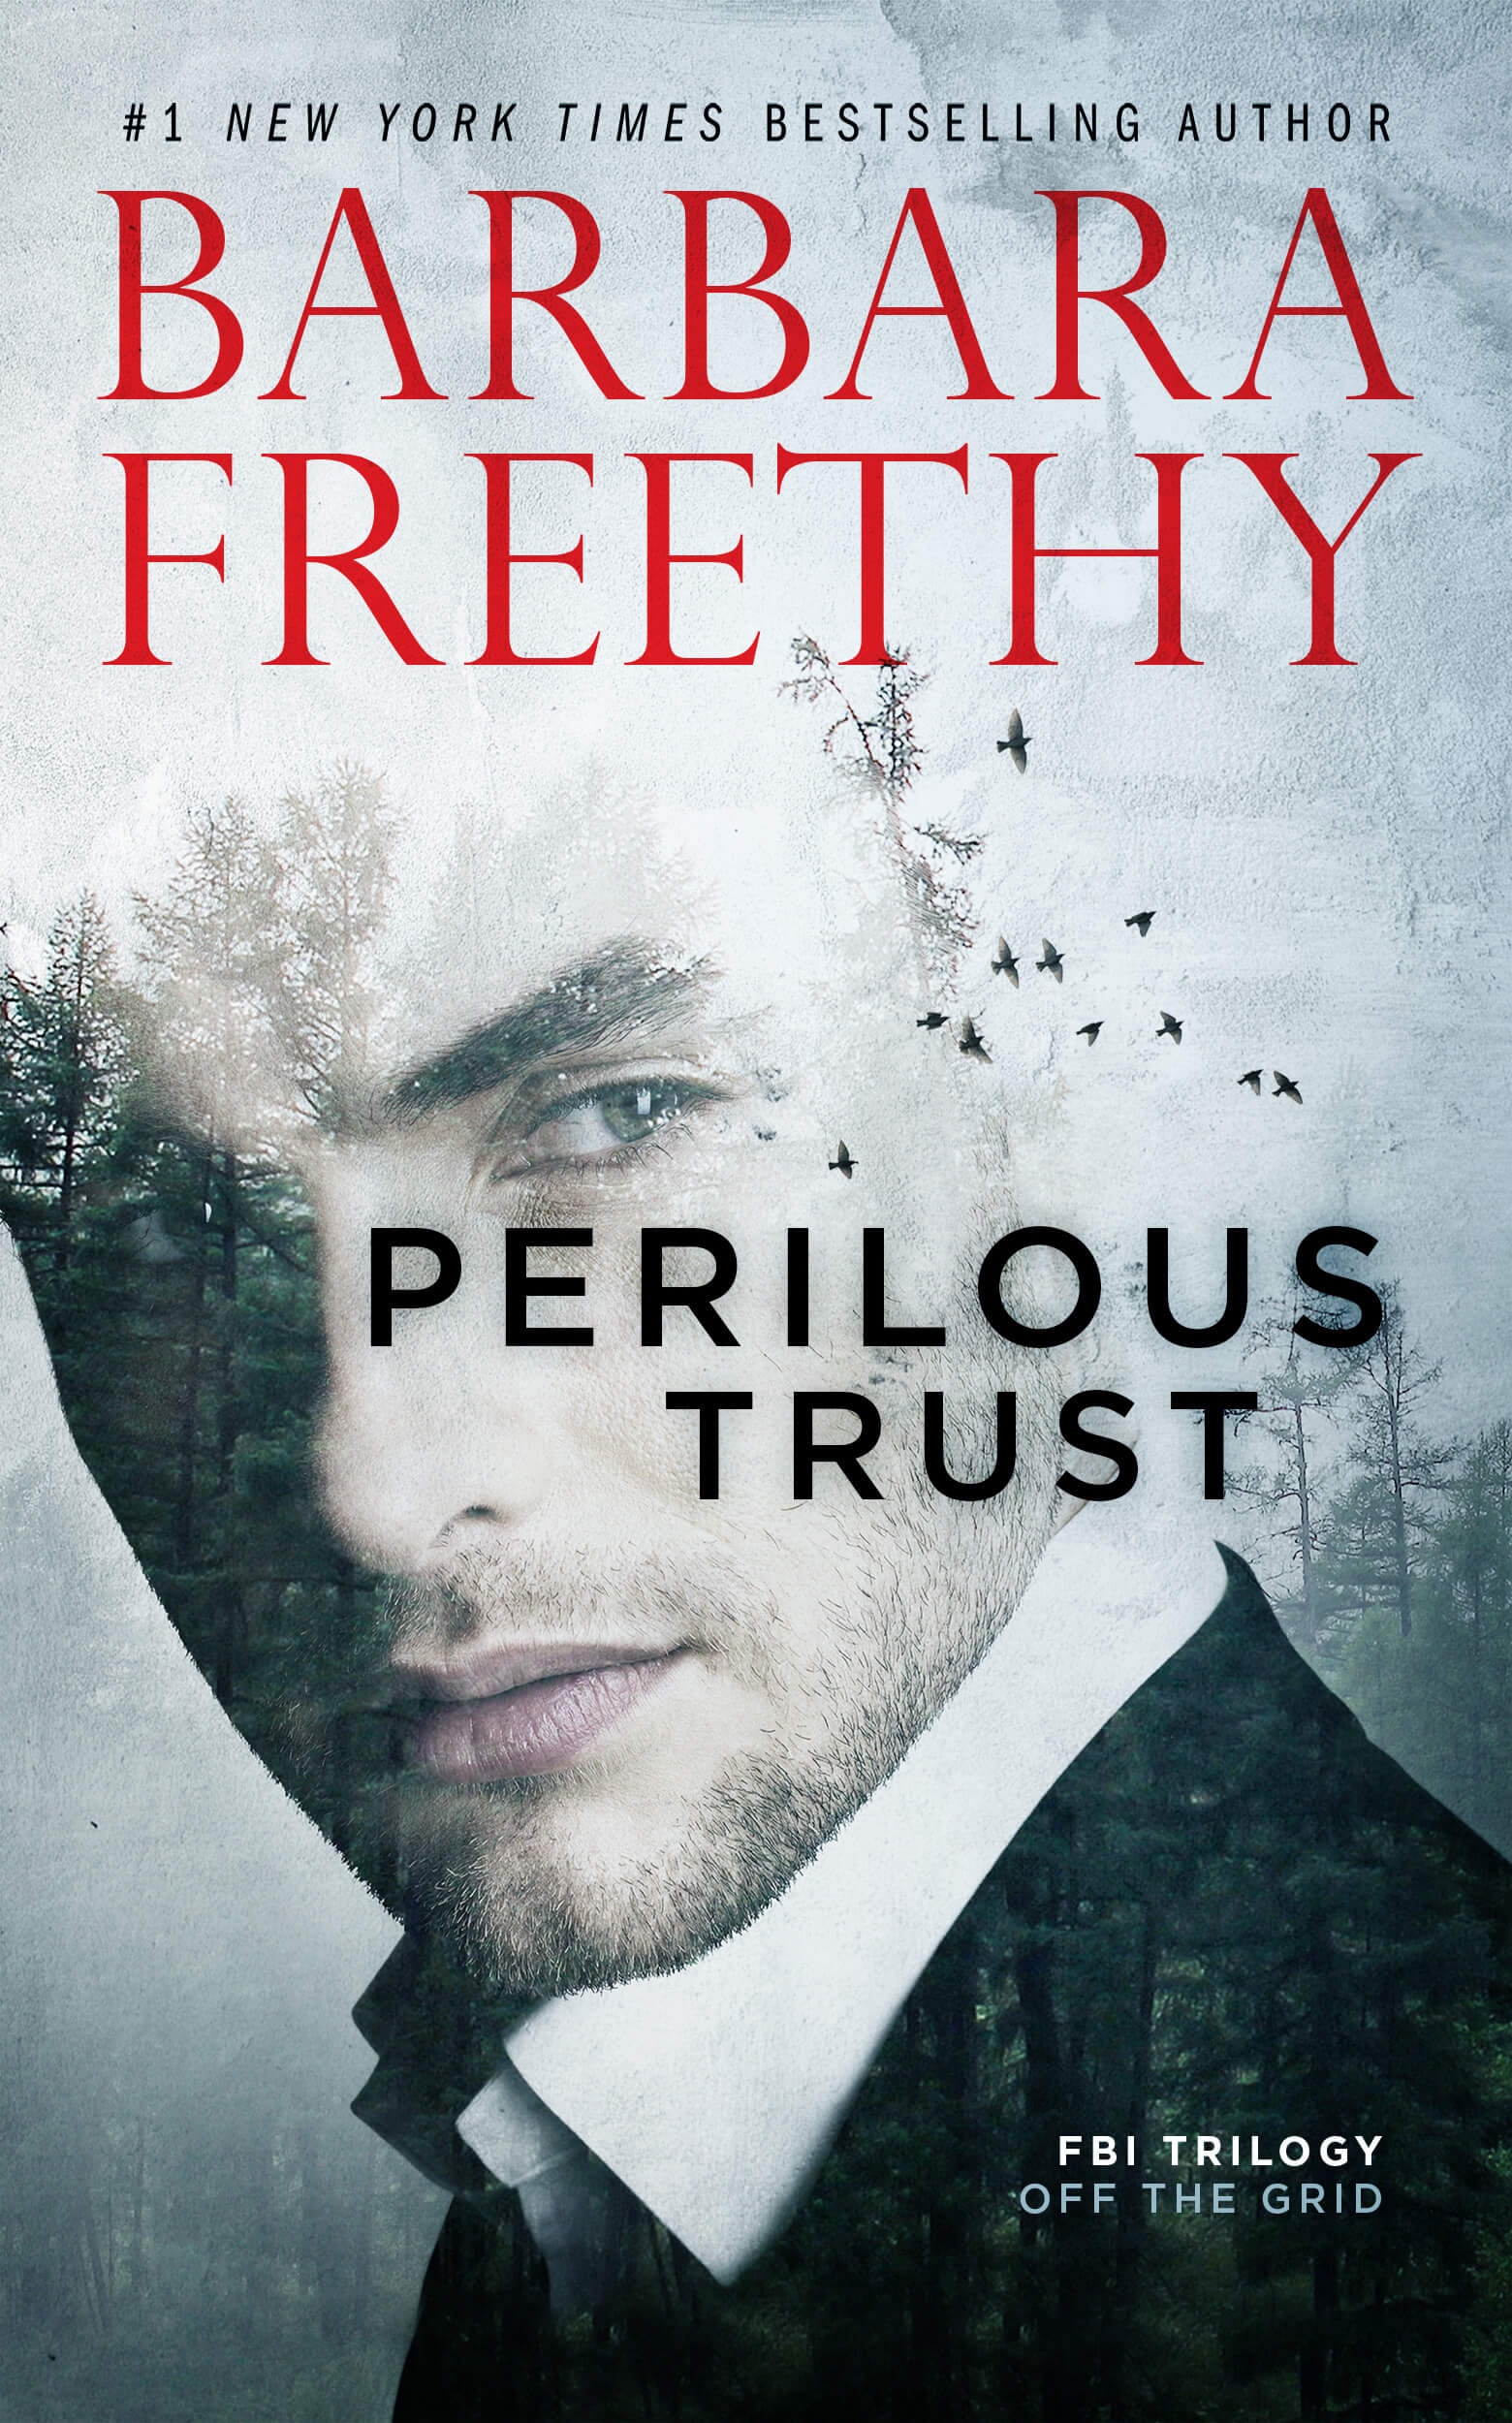 Perilous Truth by Barbara Freethy: Excerpt